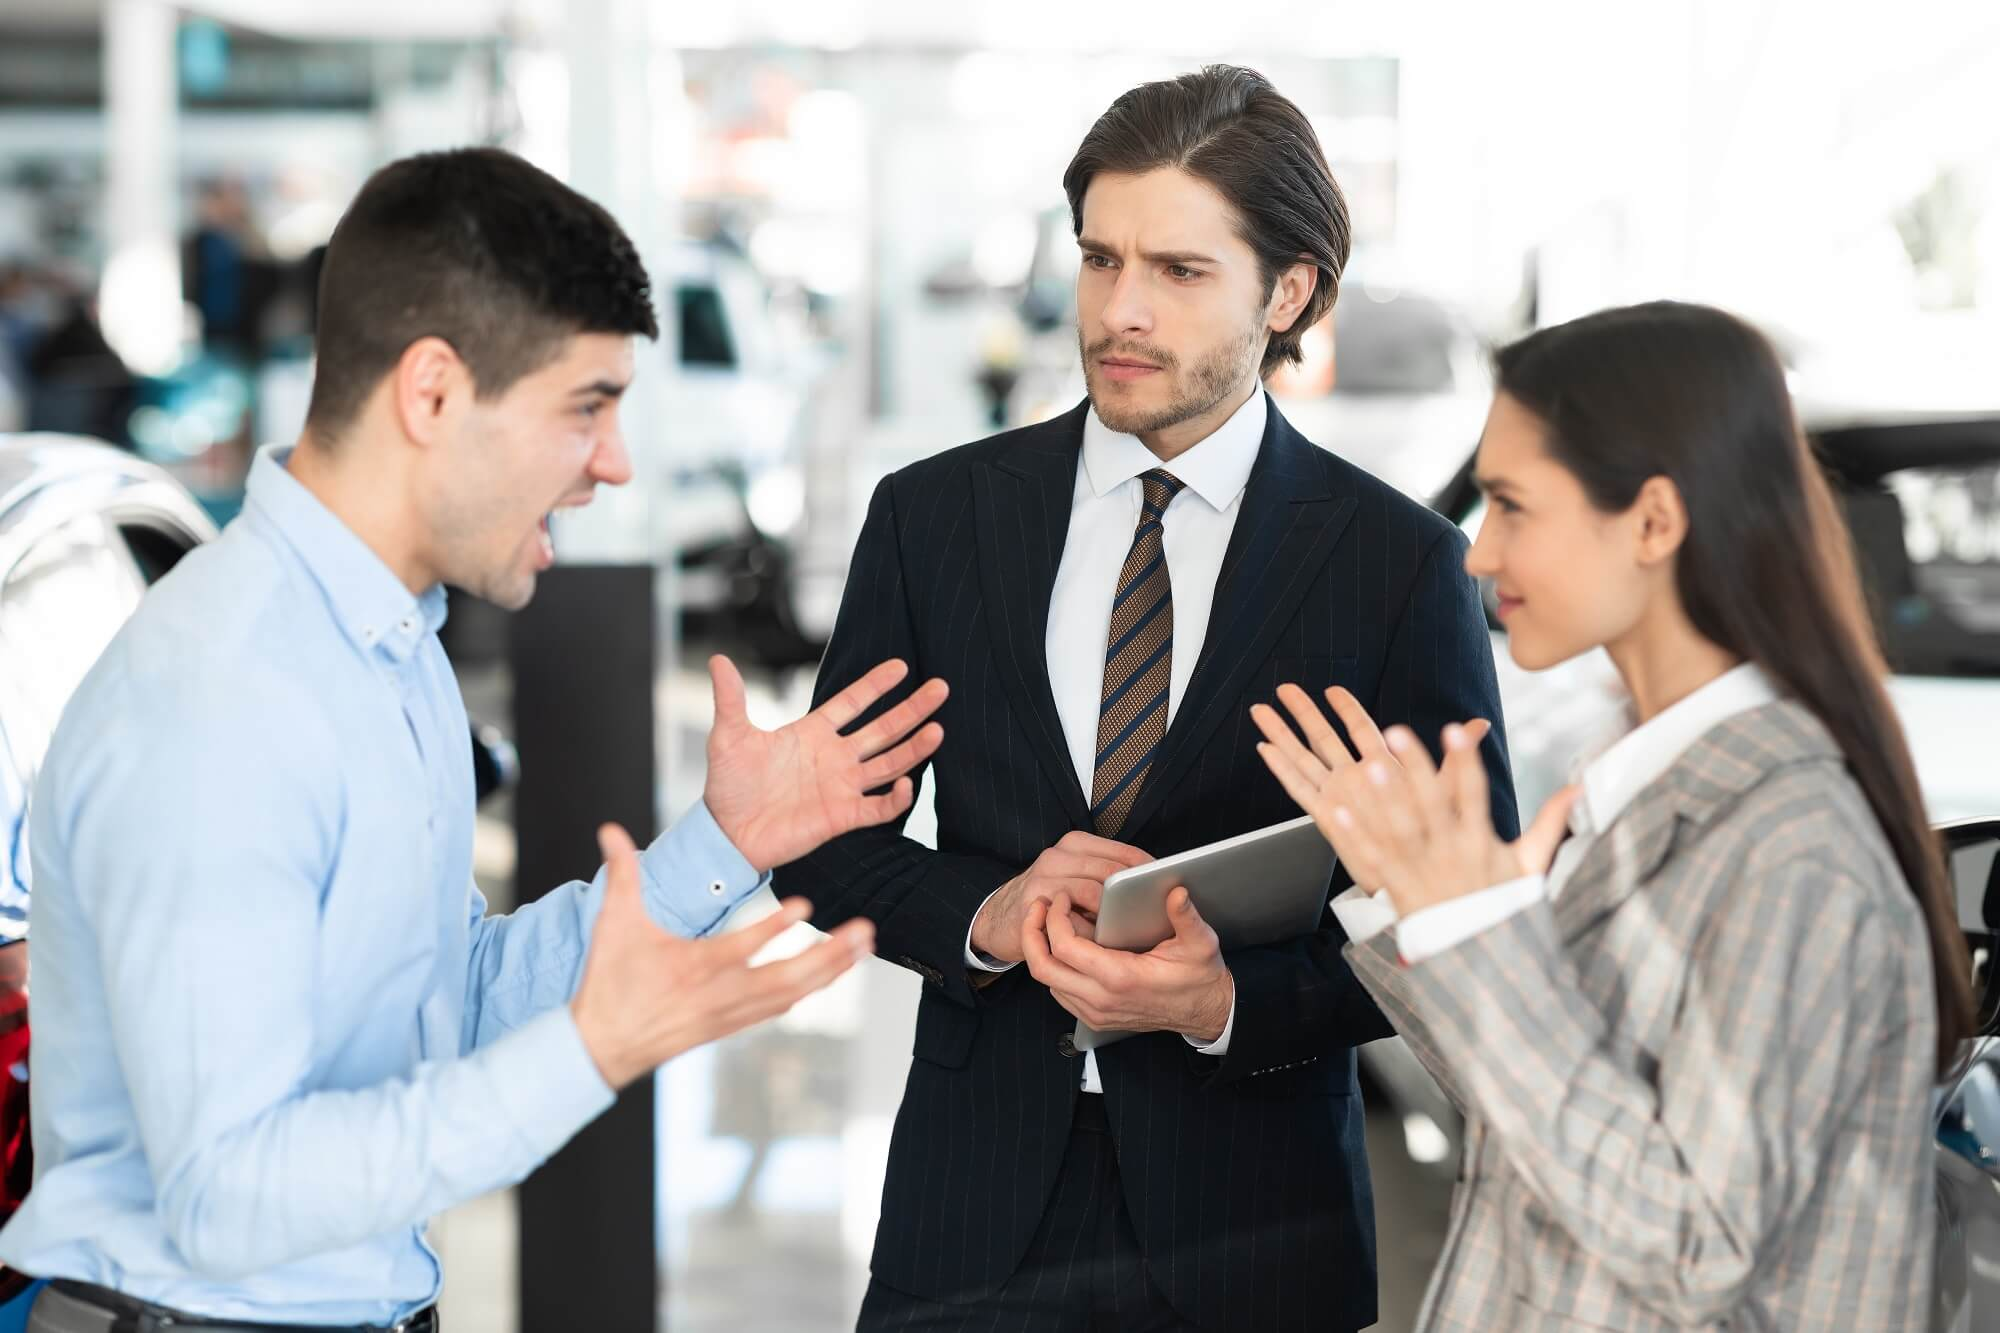 how to remain calm in front of unhappy customer